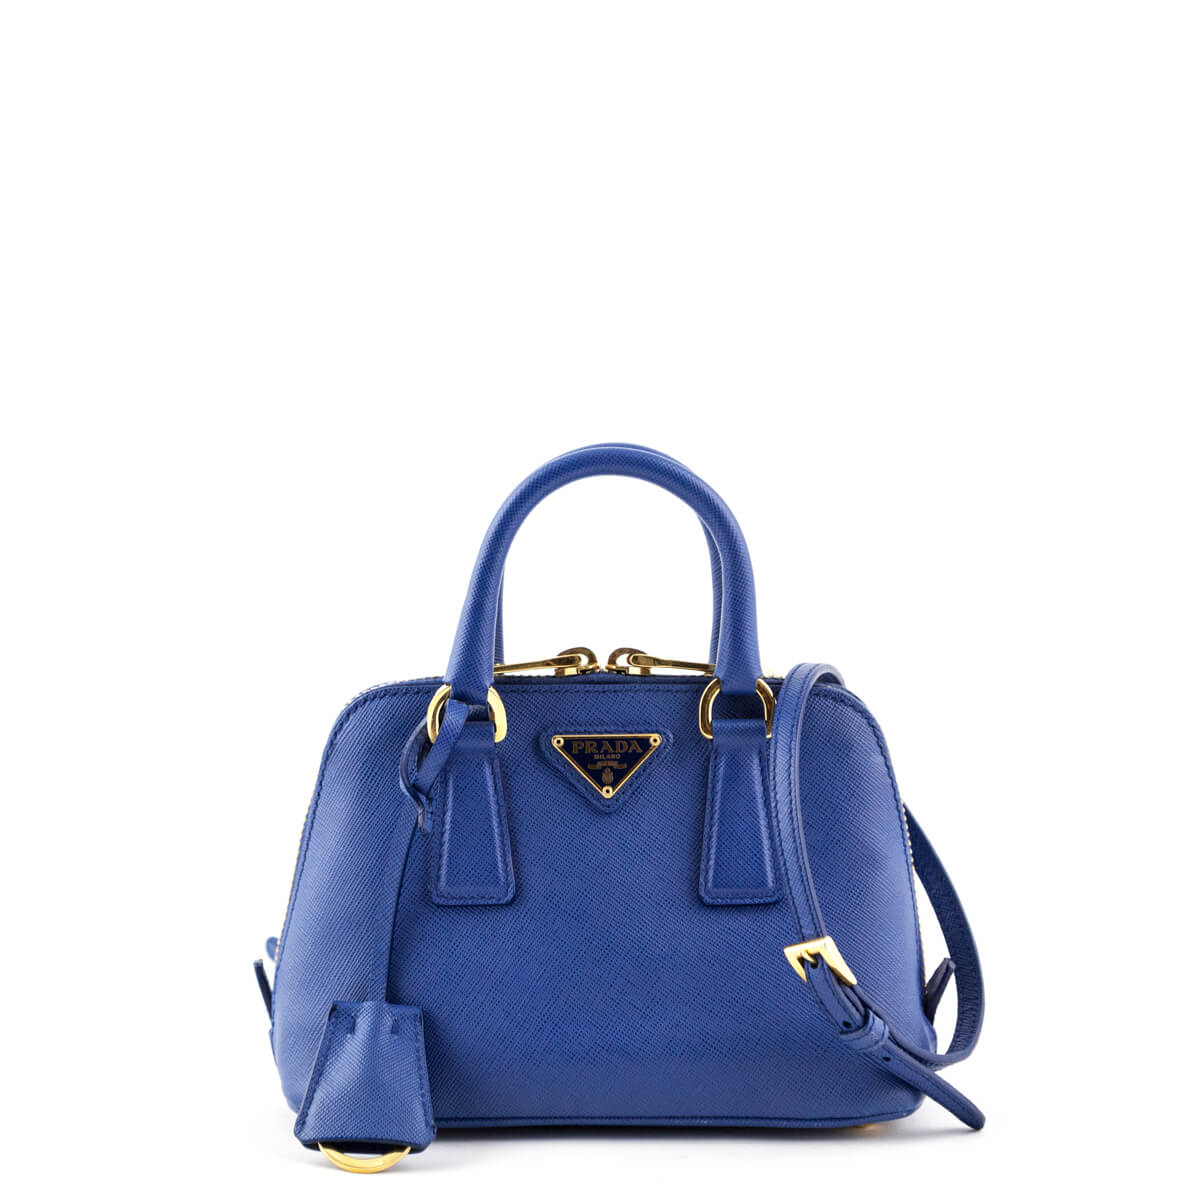 0d354eb4c9f0 Prada Blue Saffiano Lux Mini Promenade Bag - LOVE that BAG - Preowned  Authentic Designer Handbags ...